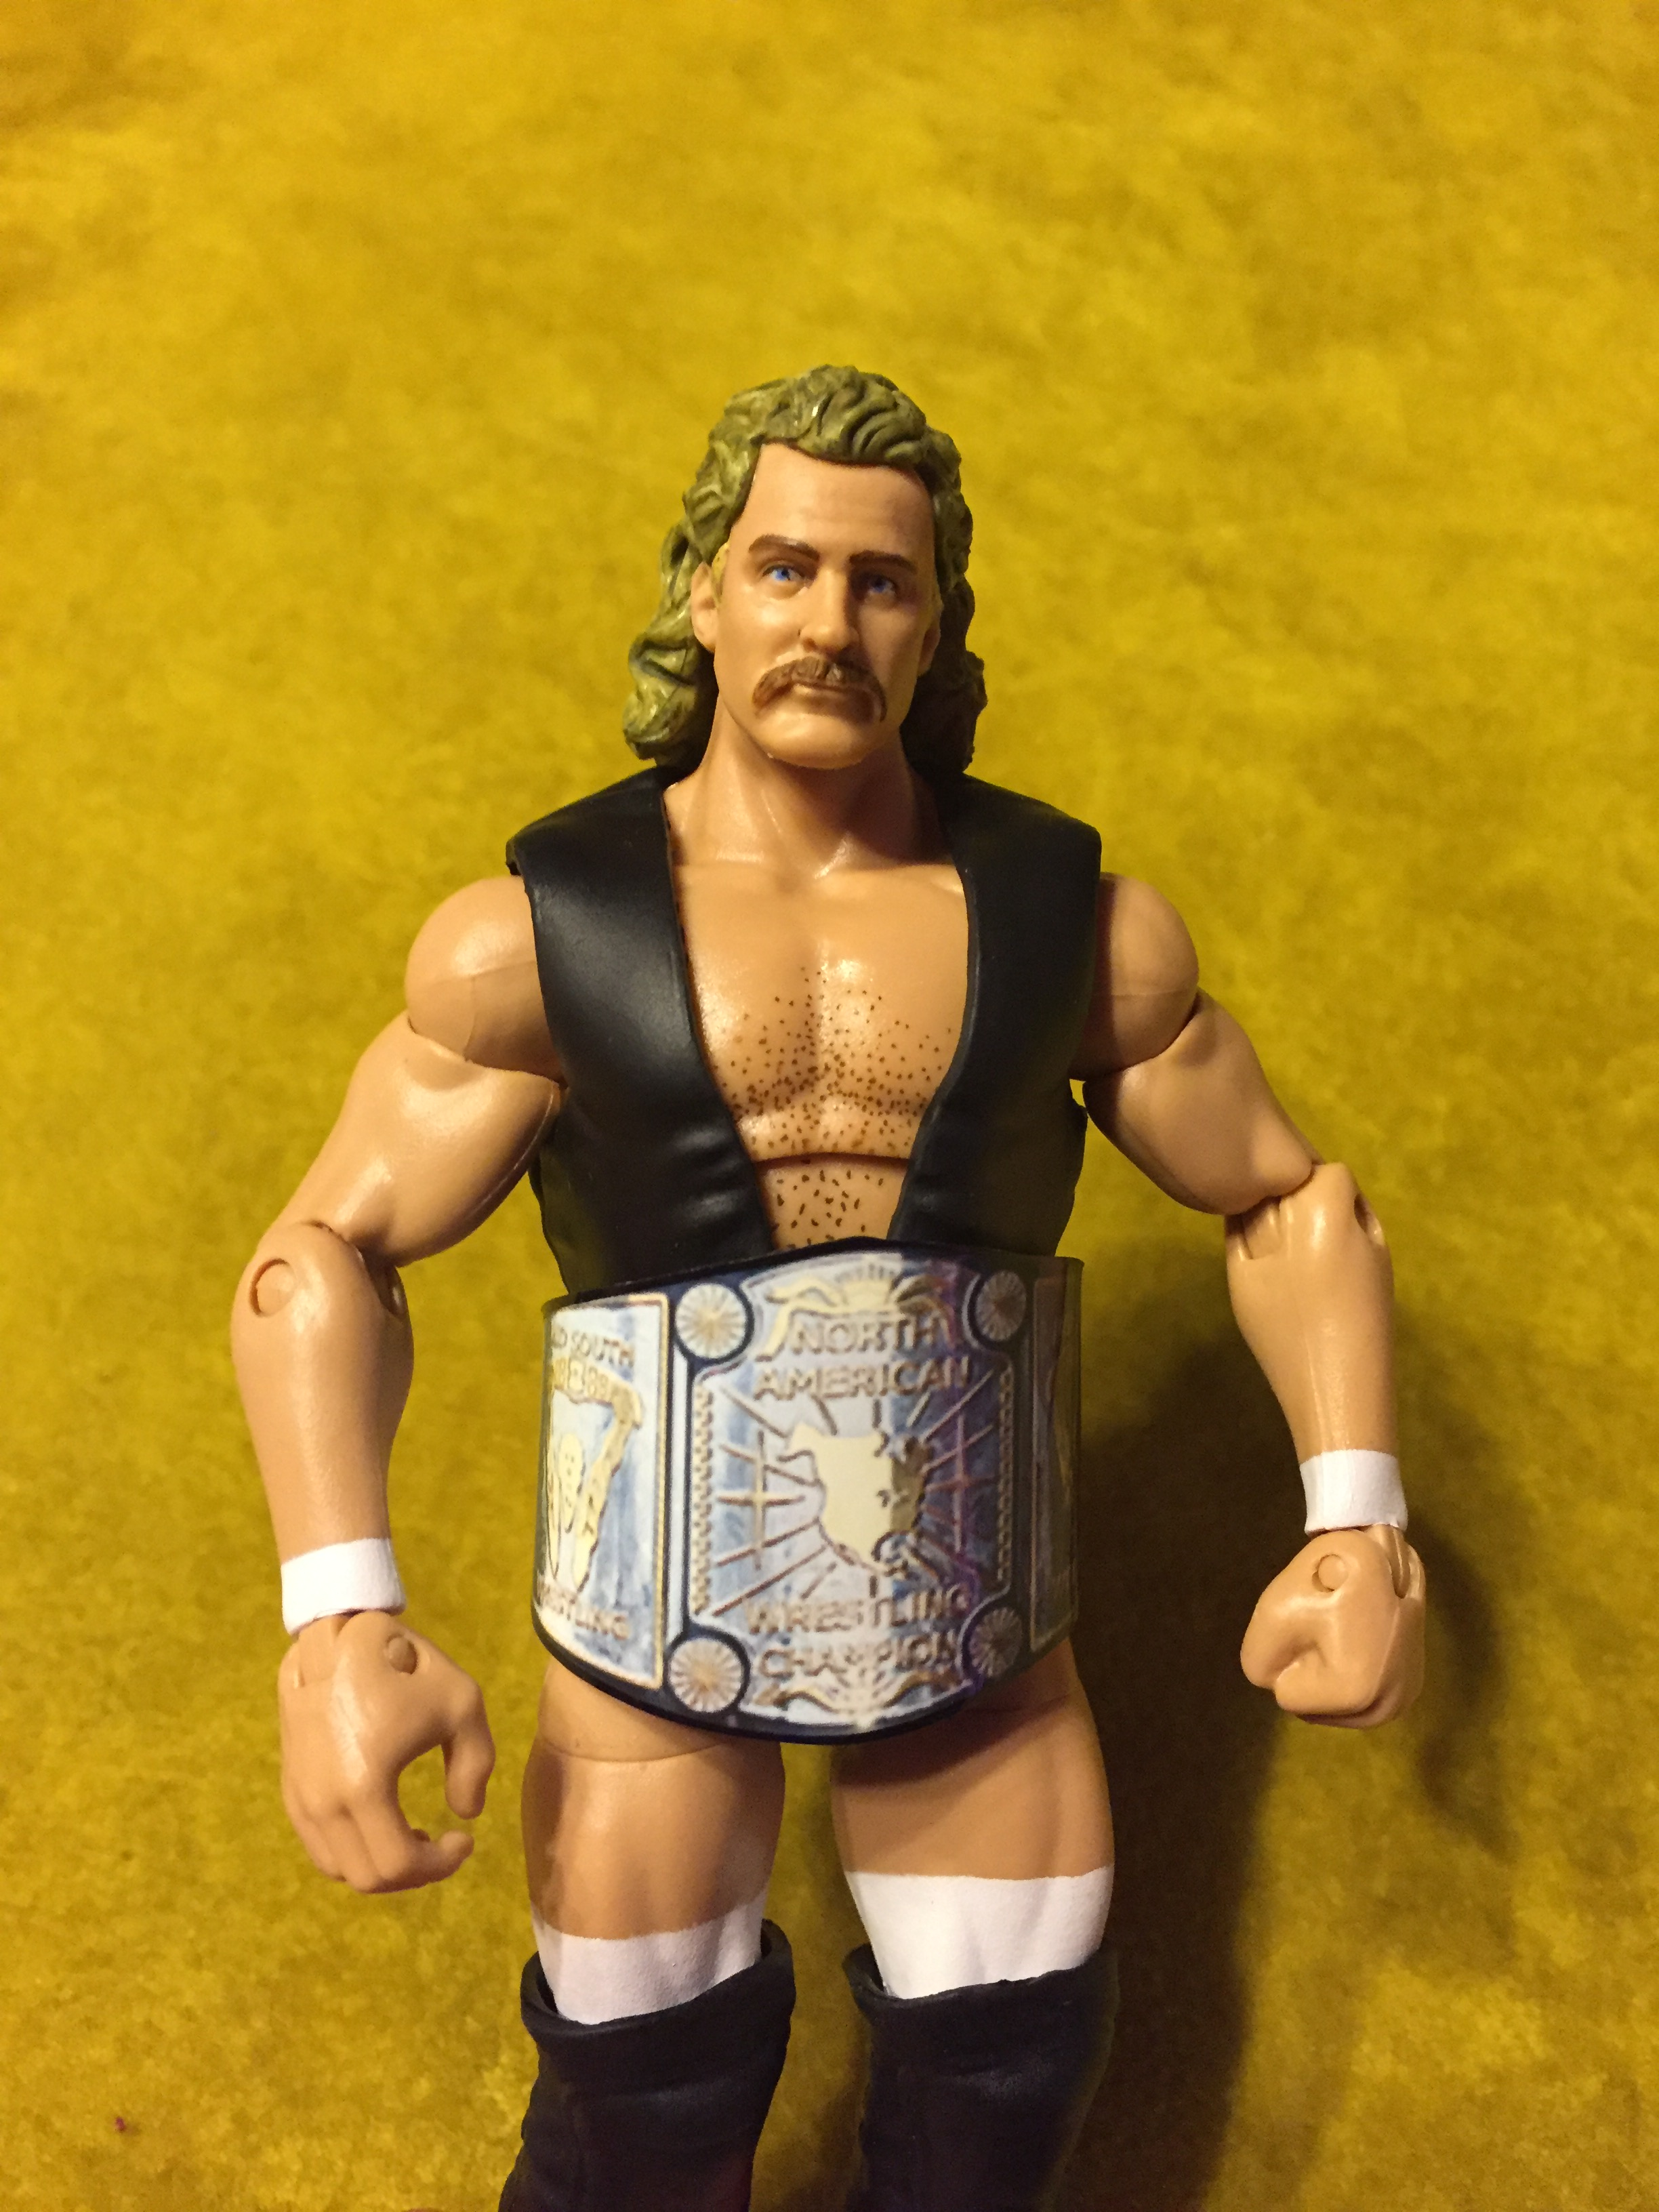 Here is magnum T.A. by mattel.  the north american championship belt is a custom belt i ordered off of ebay.  i think it helps nicely dress out the figure.